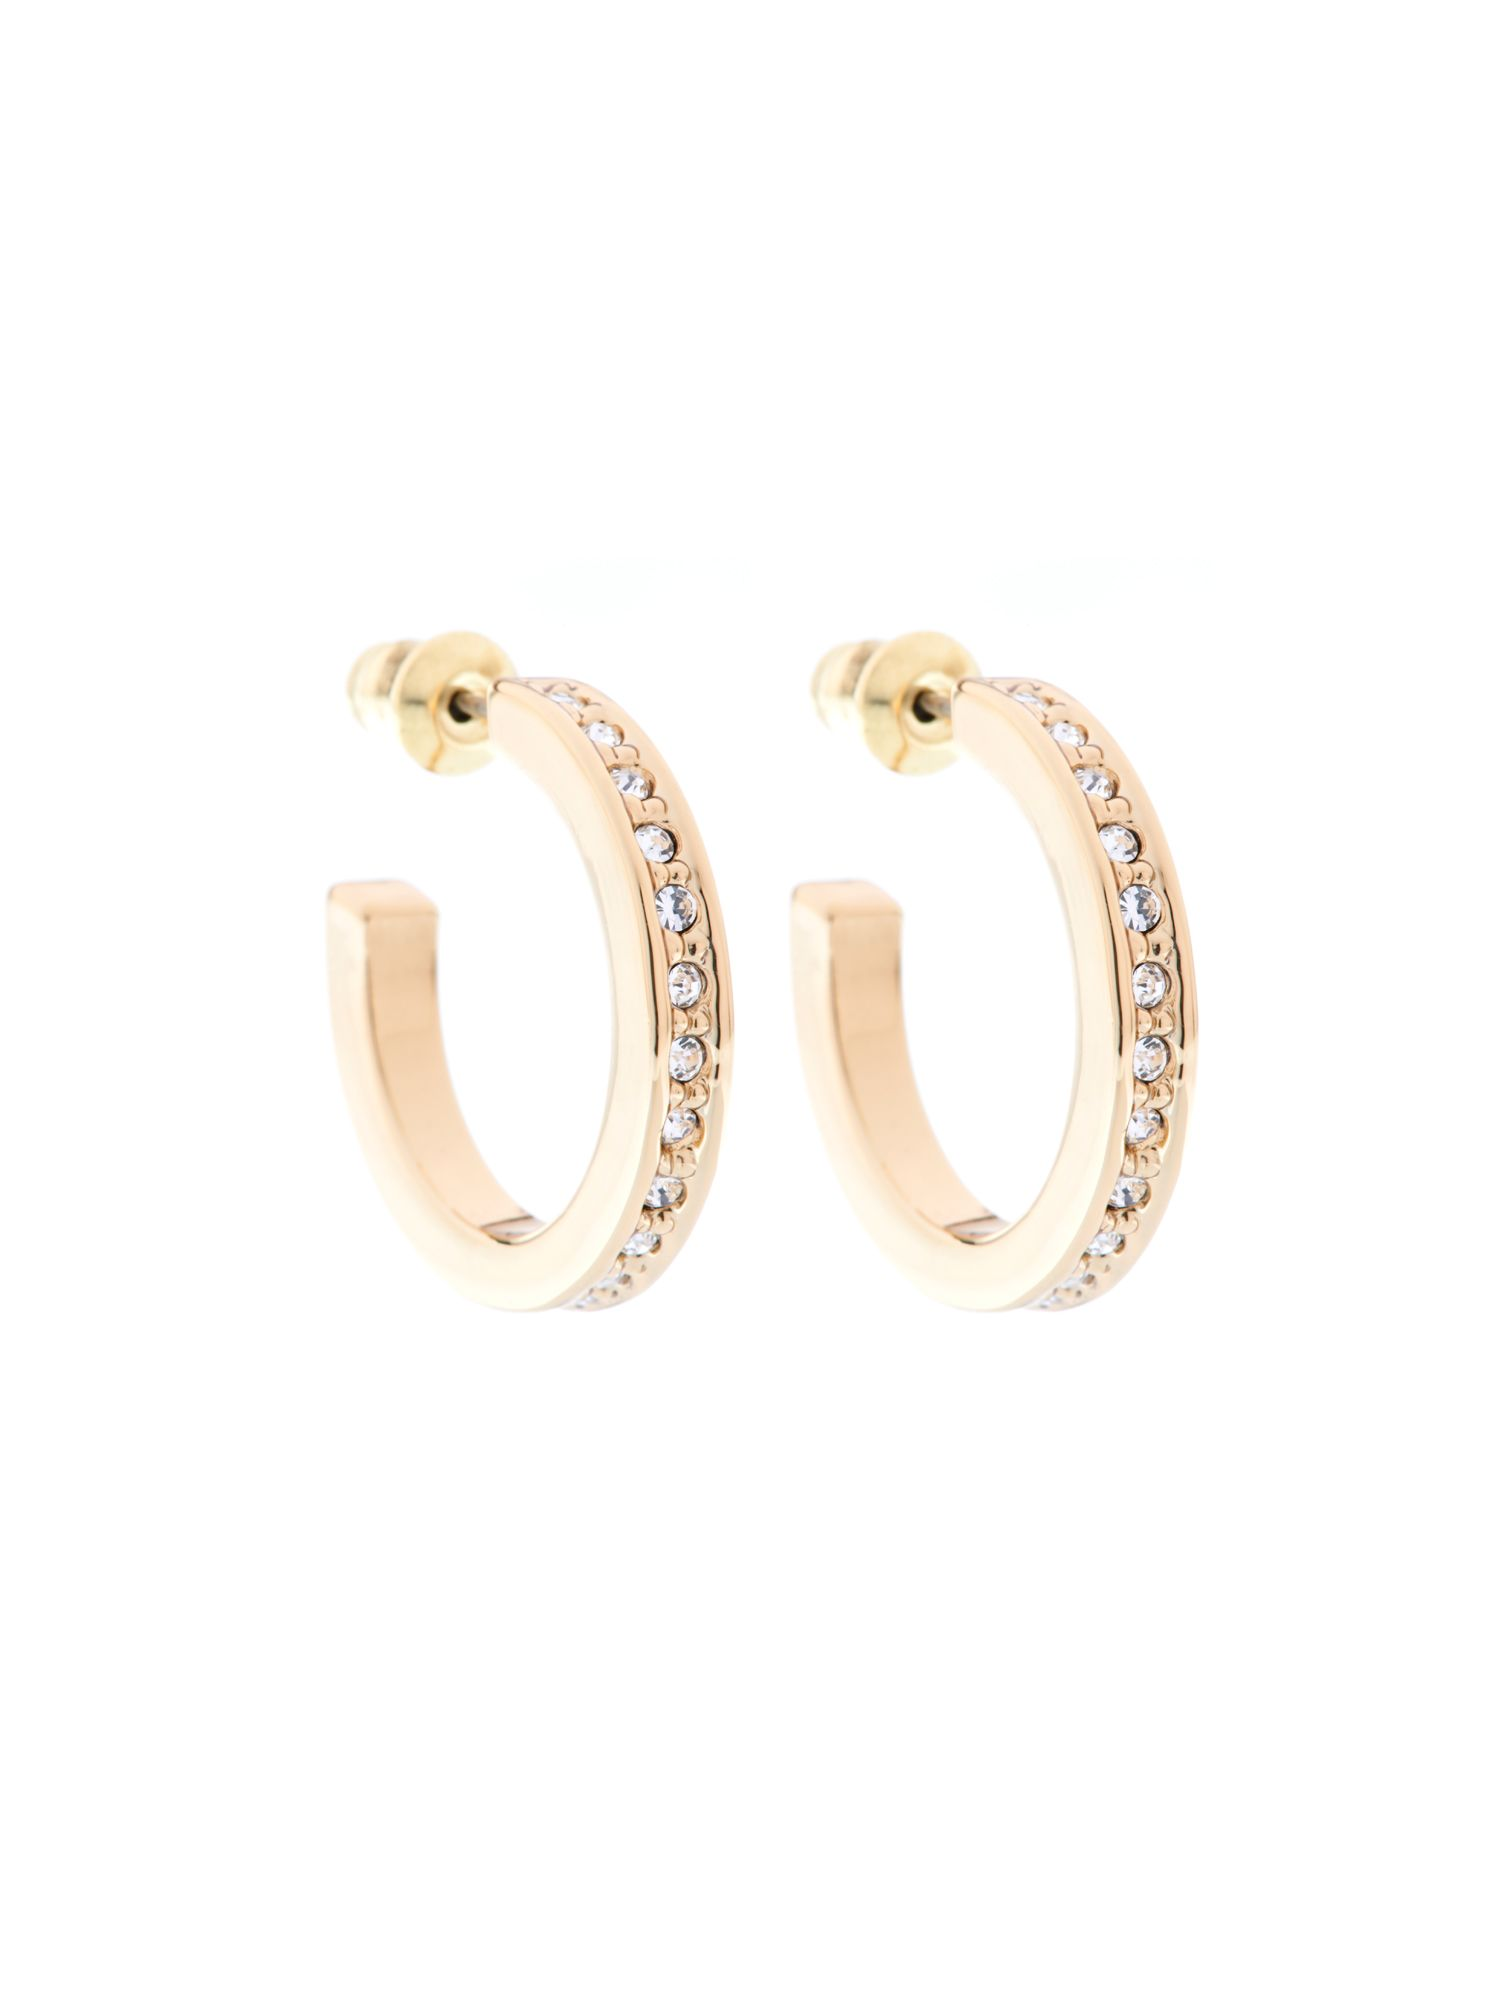 Karen millen small hoop earrings